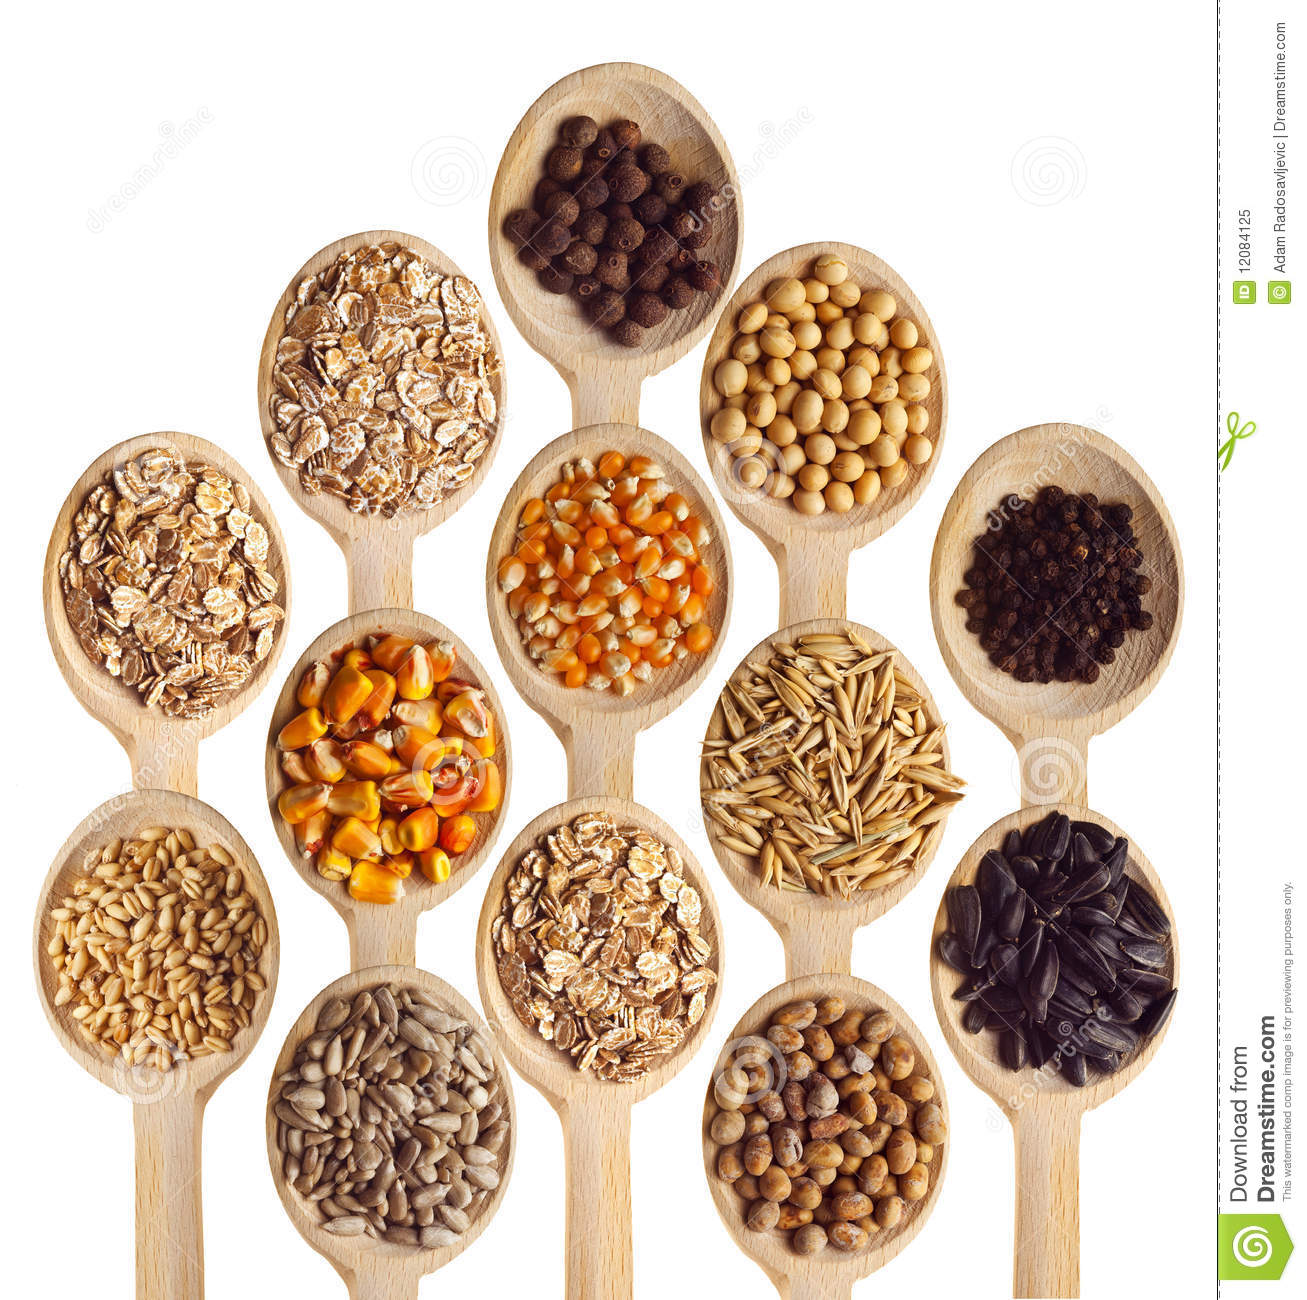 Grain And Cereal Products Stock Image. Image Of Ingredient